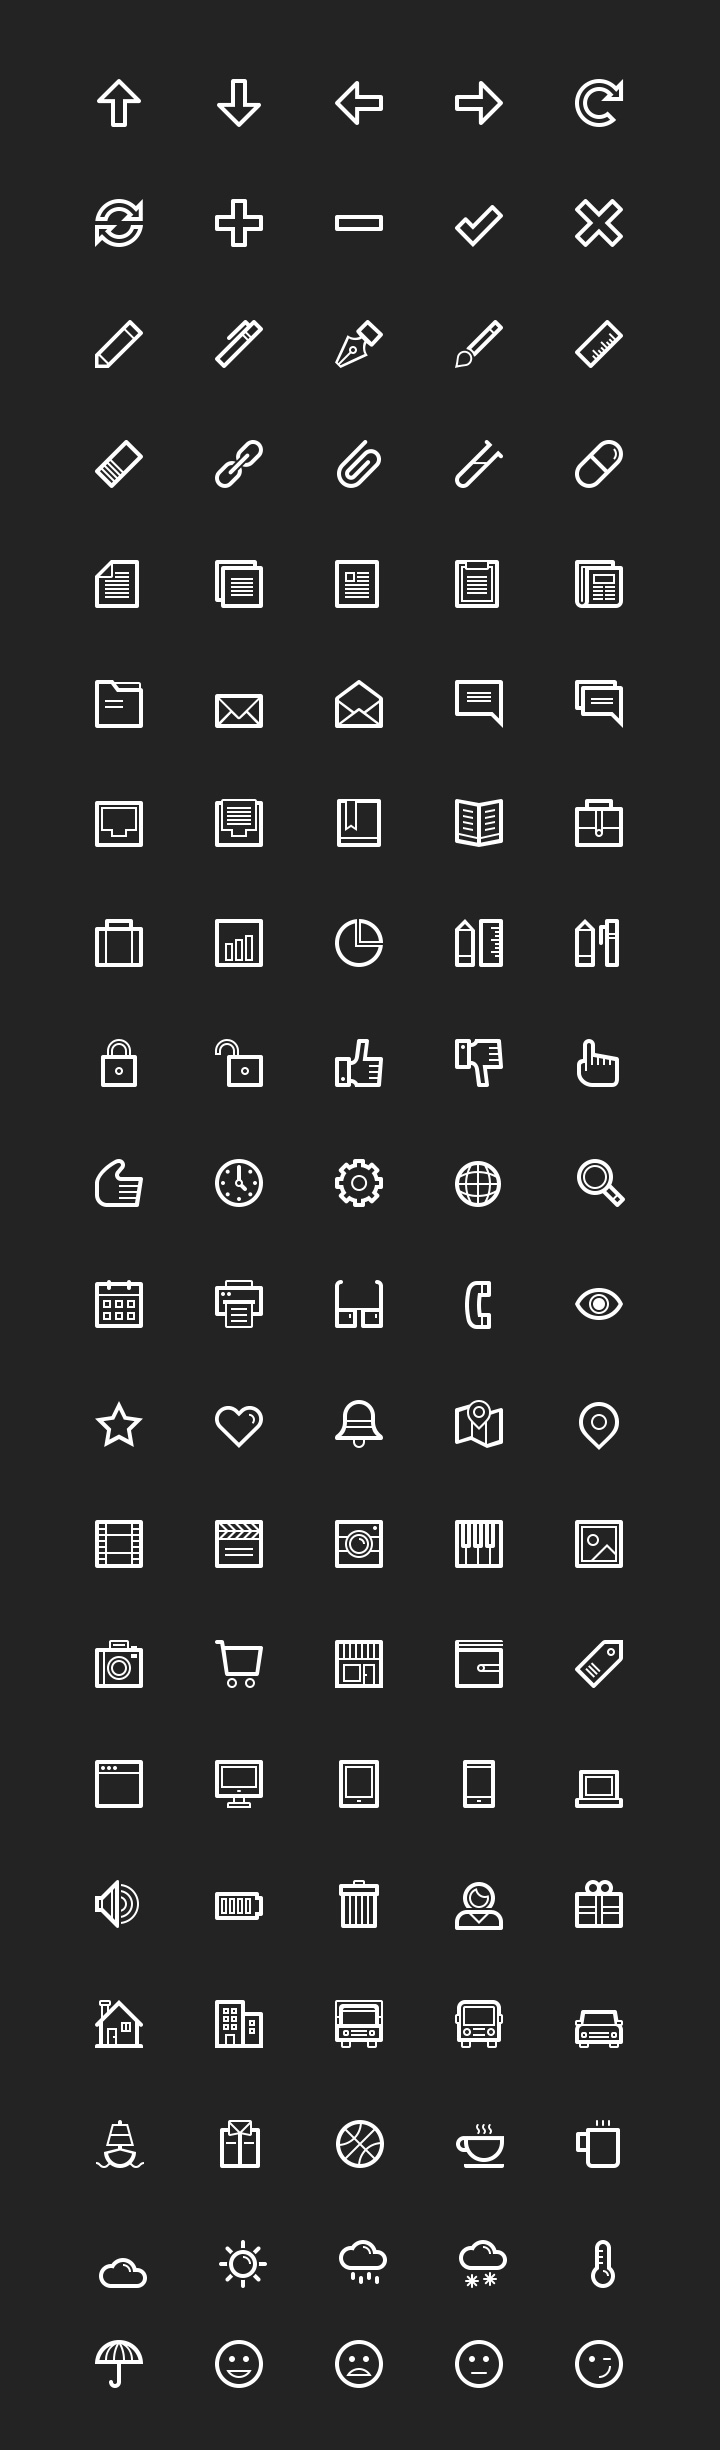 LineArt - 100 essential line icons detailed view